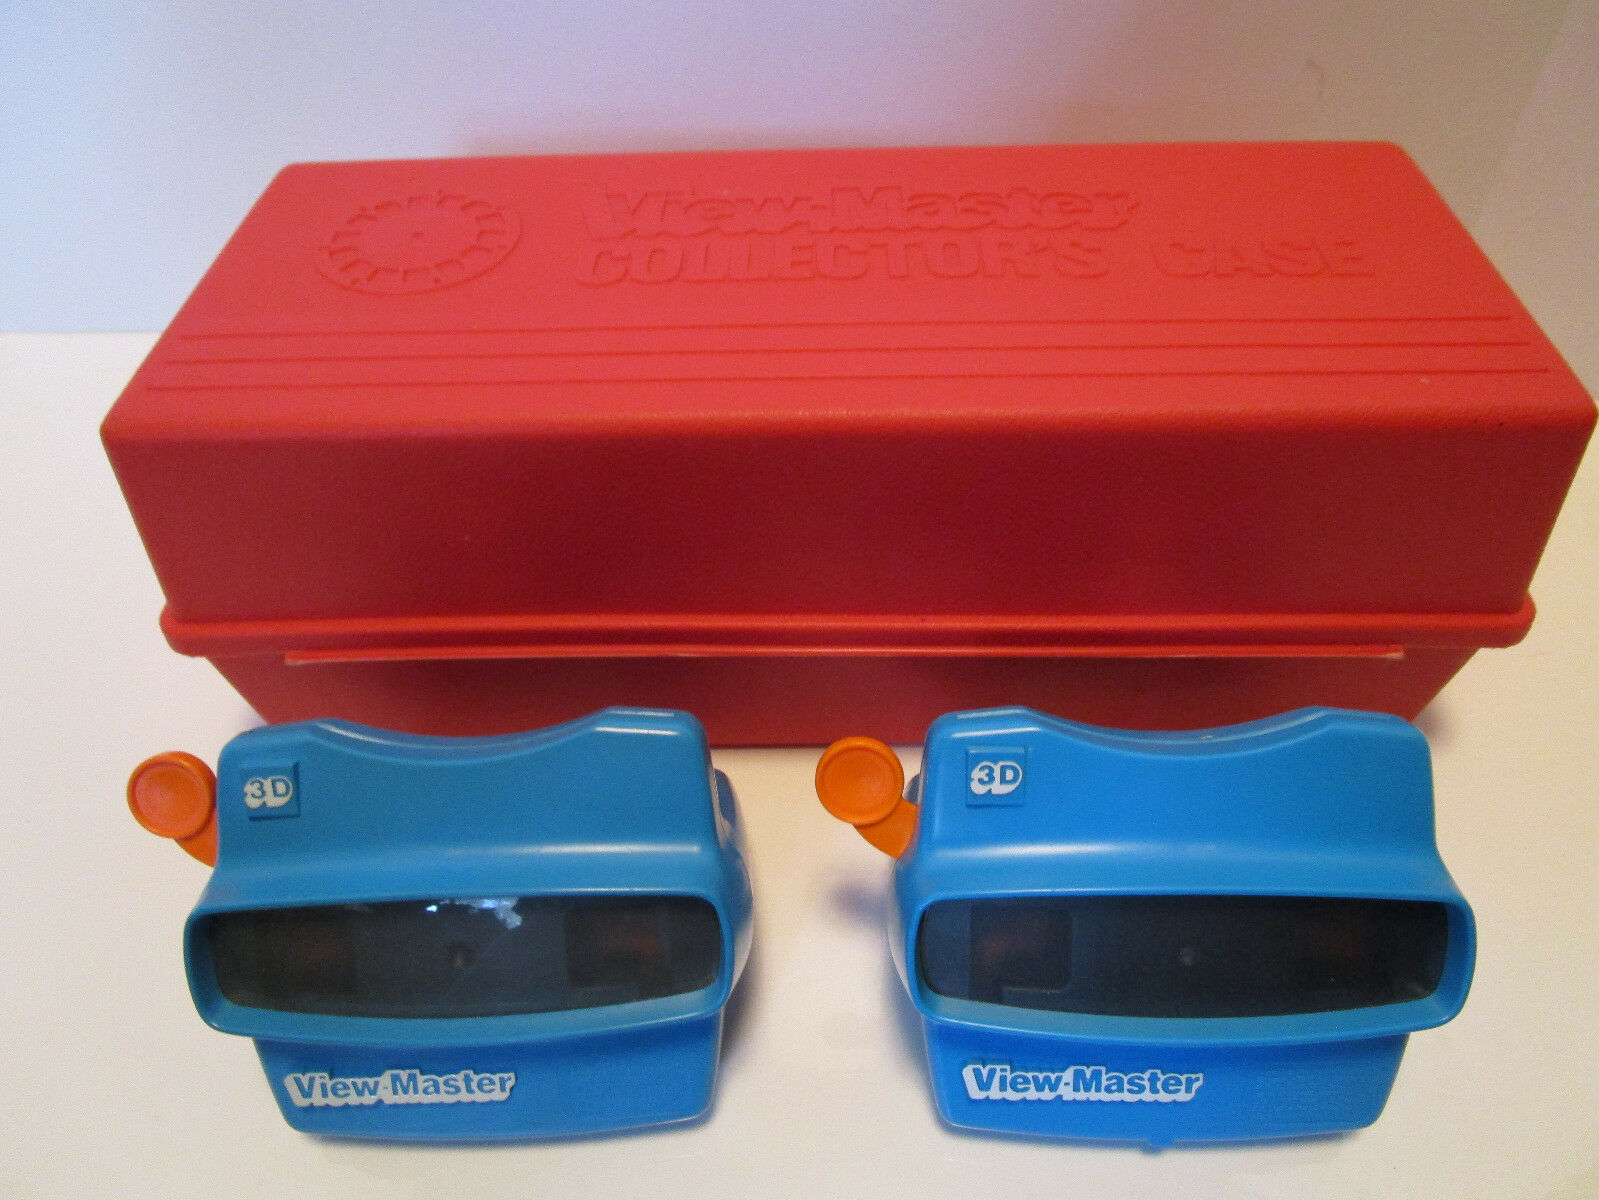 View Master Collector's Case with 2 bluee View Masters Included